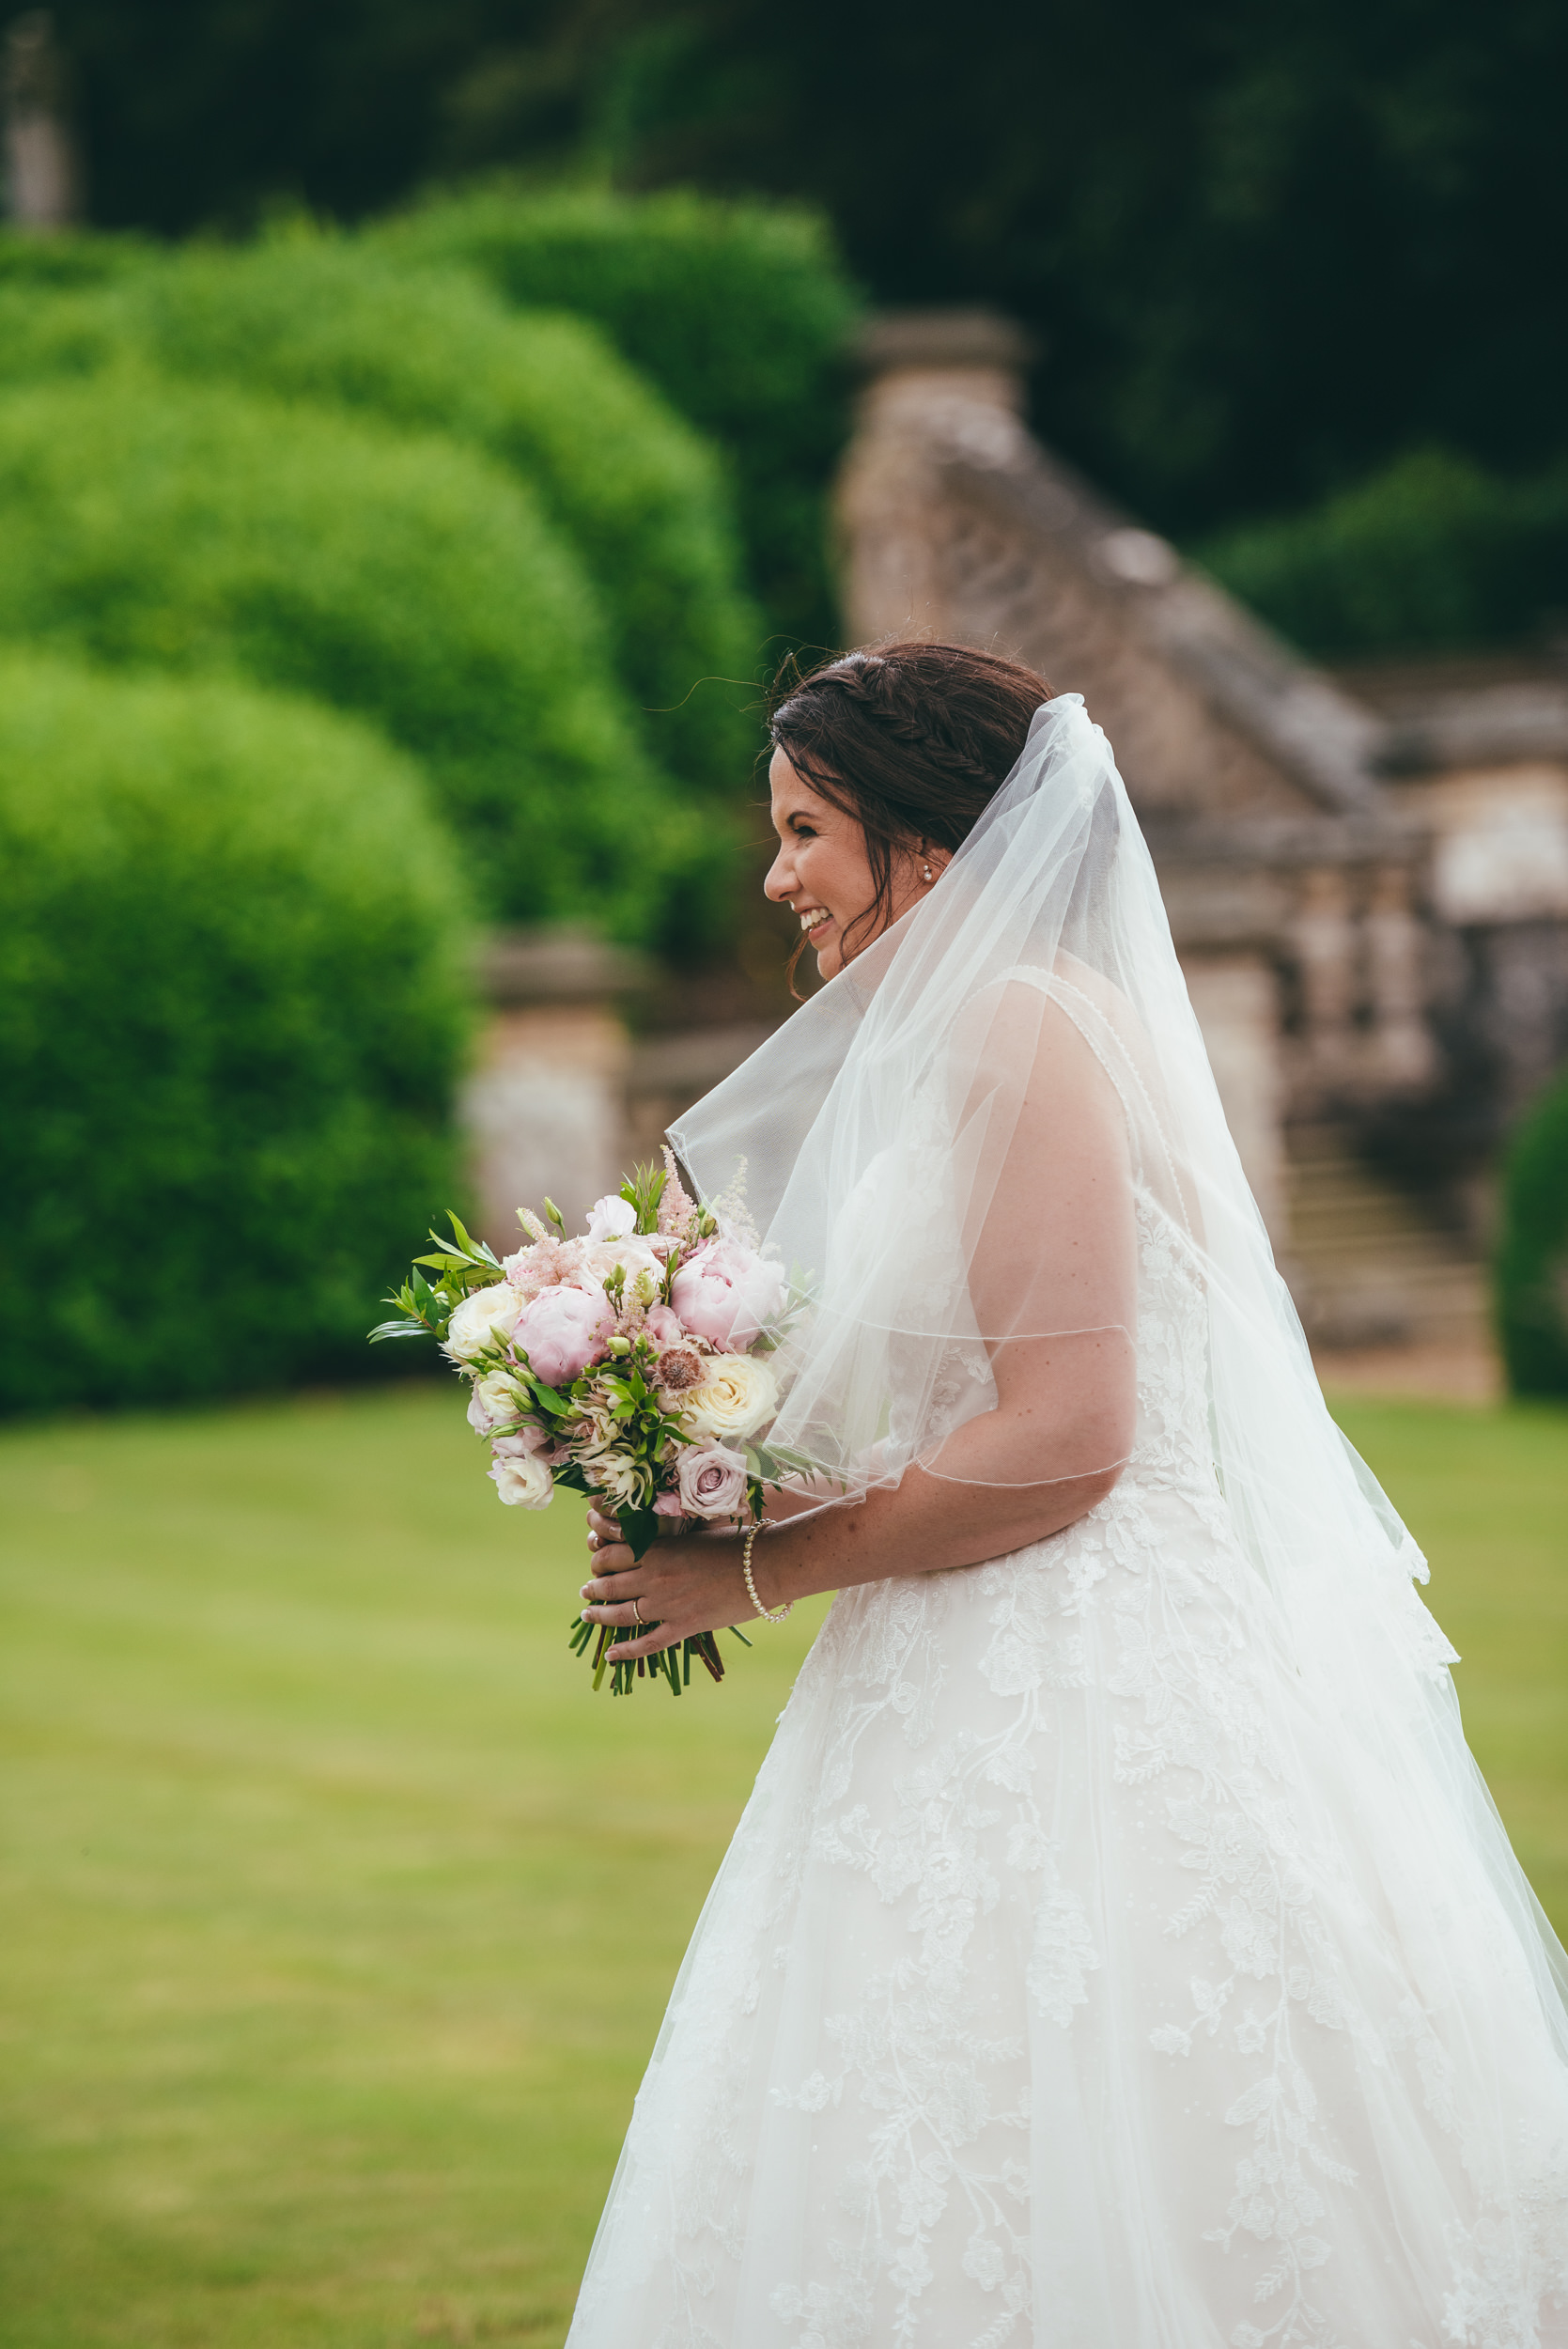 candid photograph of the bride at Harlaxton Manor